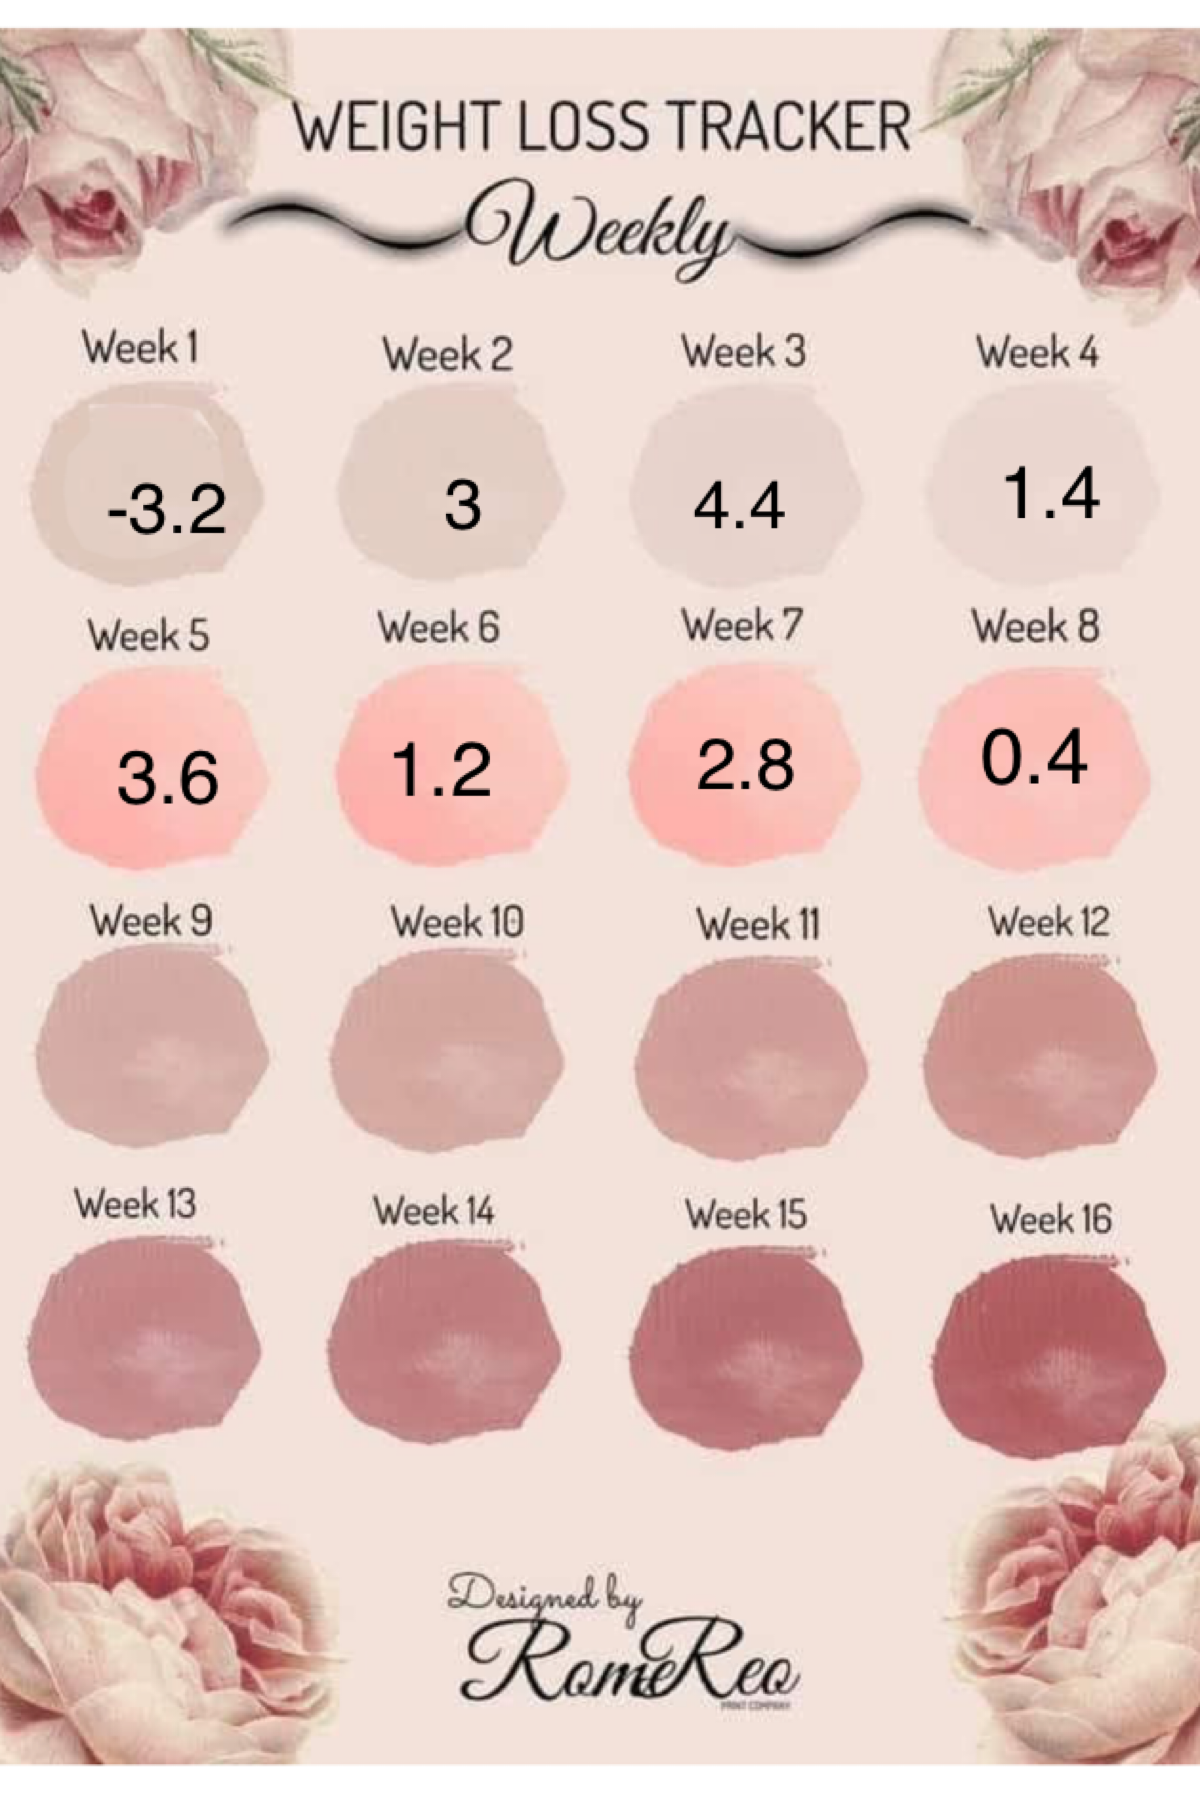 Weekly Weightloss Tracker